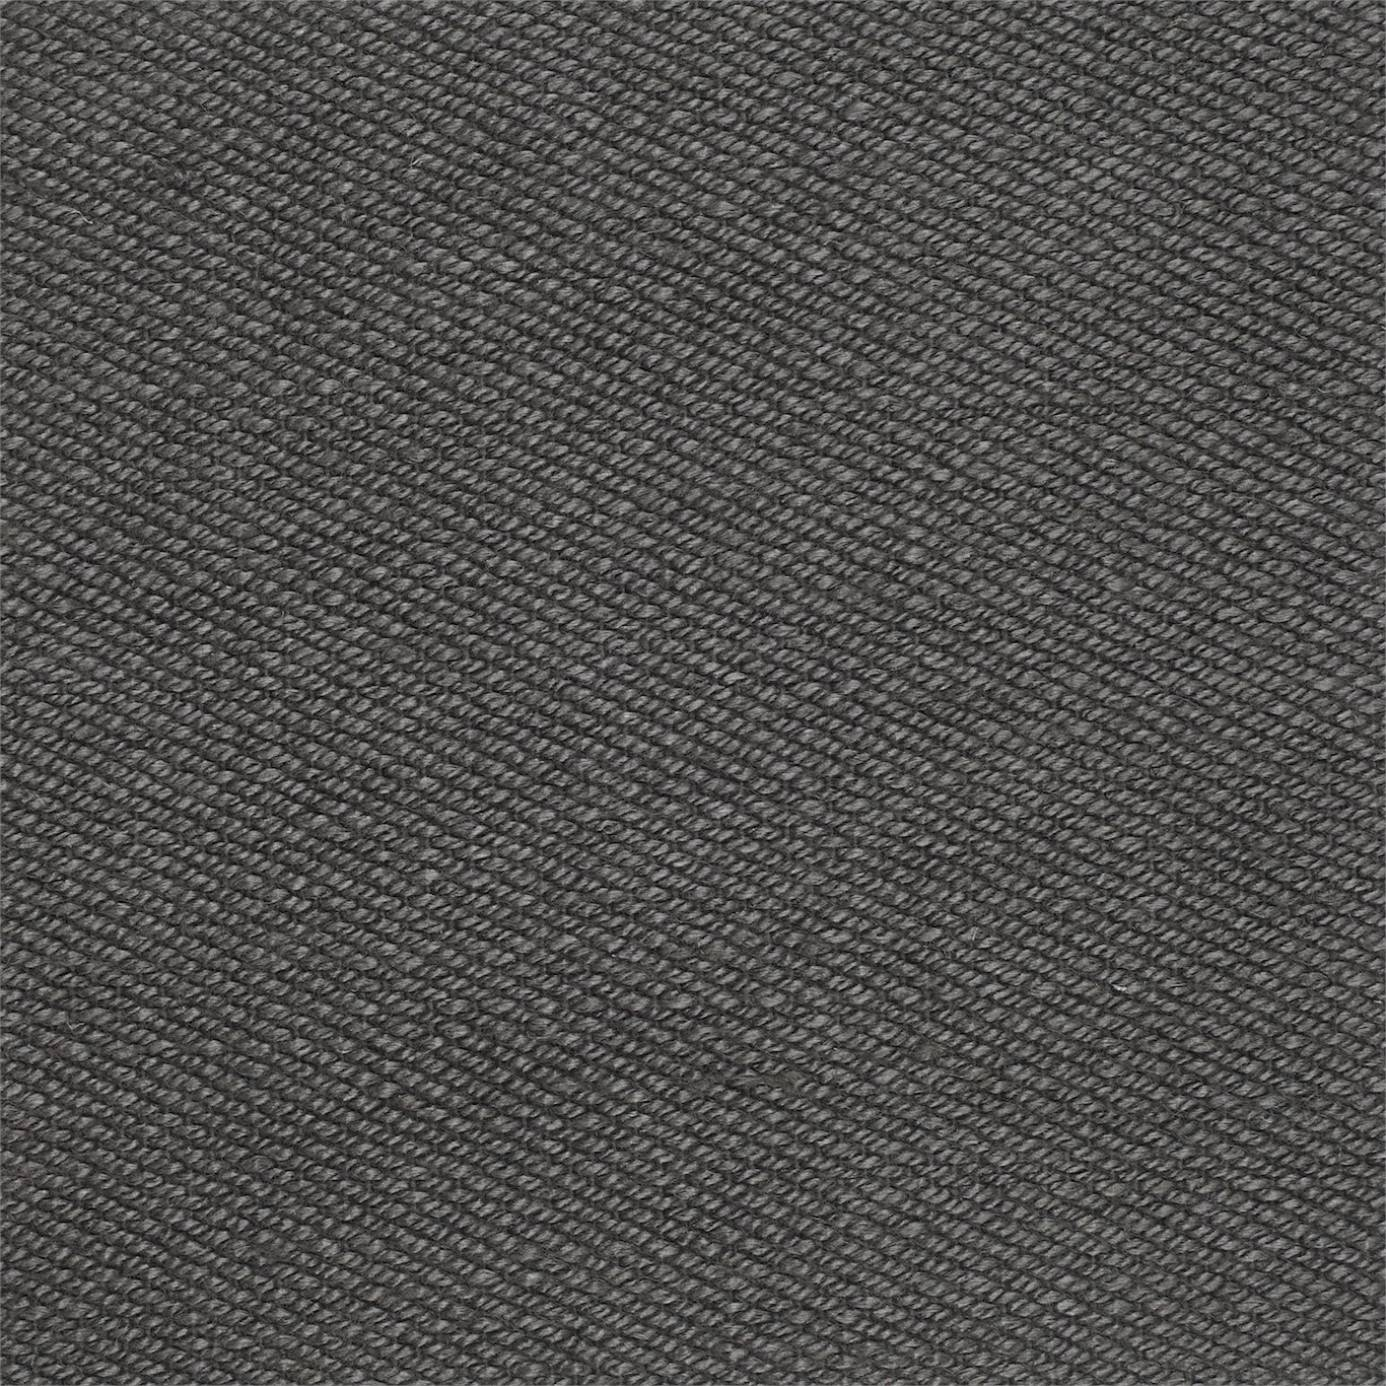 Fabric Wall Paper : Curtains in quartz twill fabric anthracite